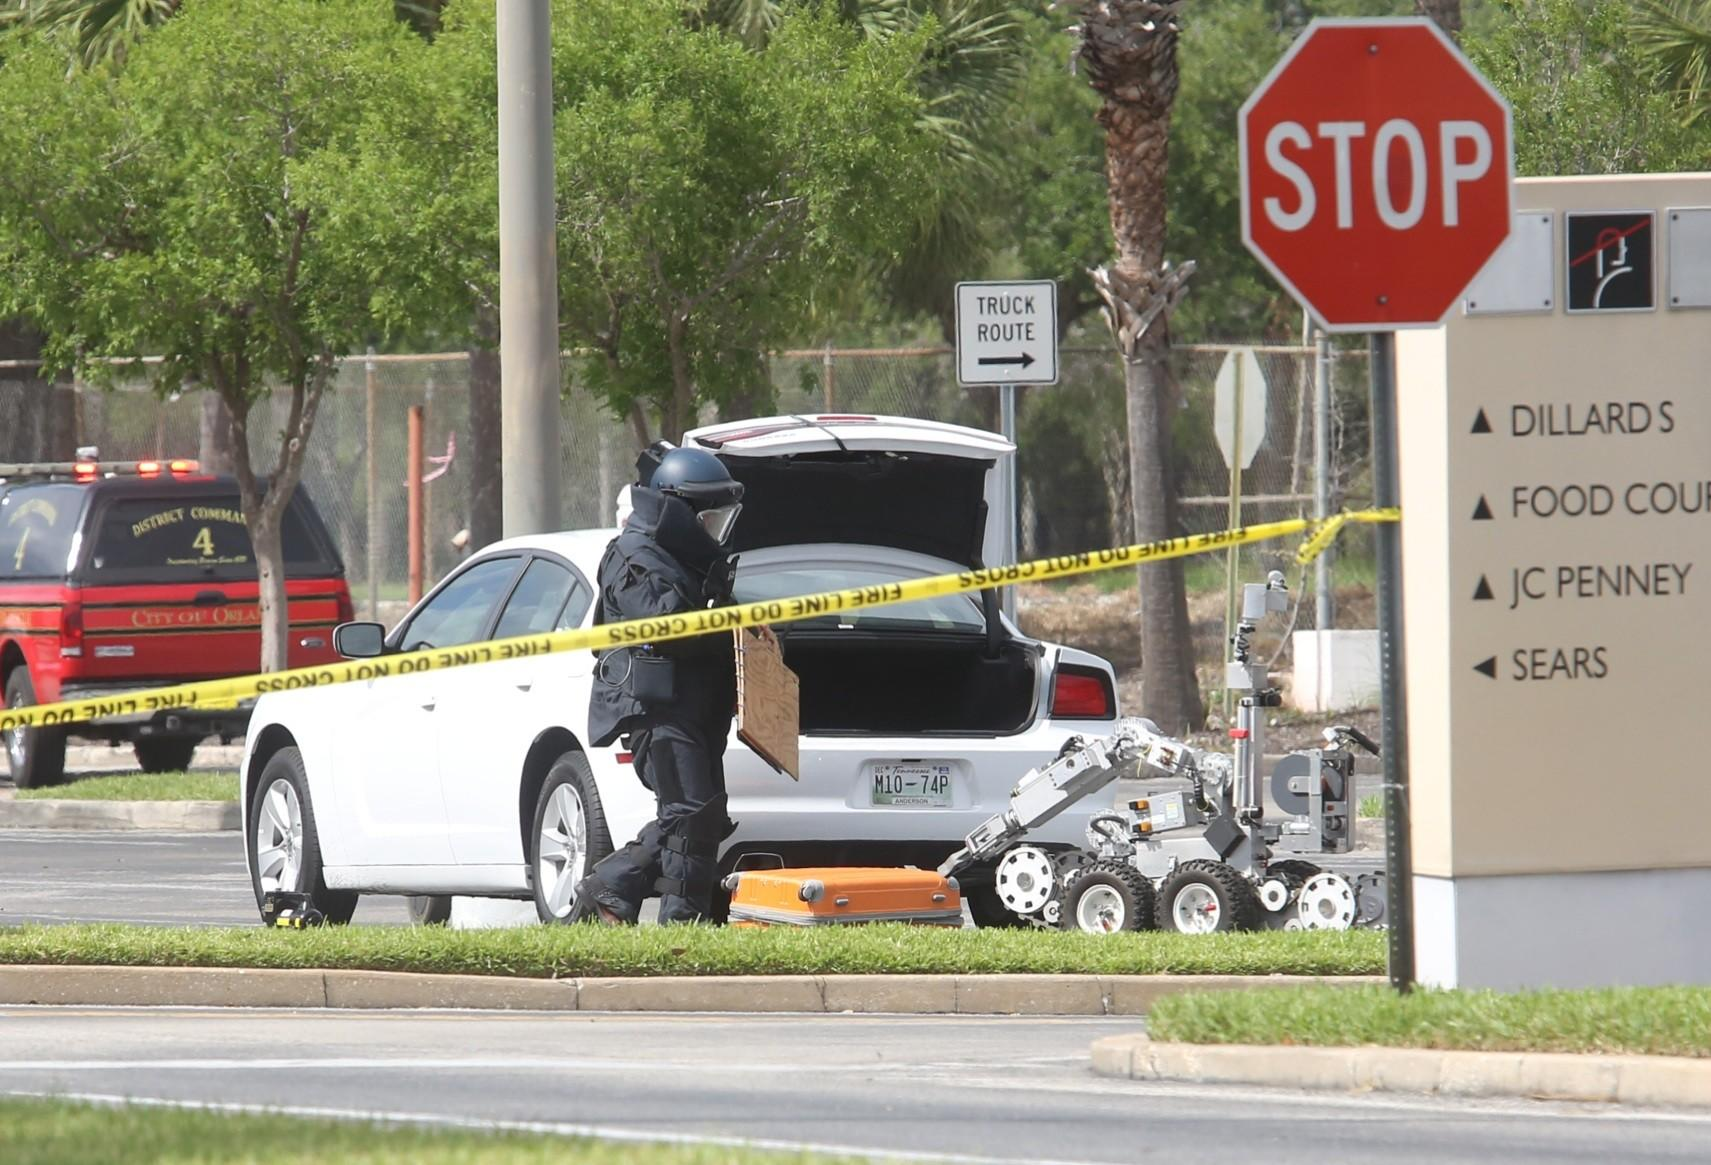 The Orlando Police Department bomb squad checks a suspicious car parked outside Orlando Fashion Square.